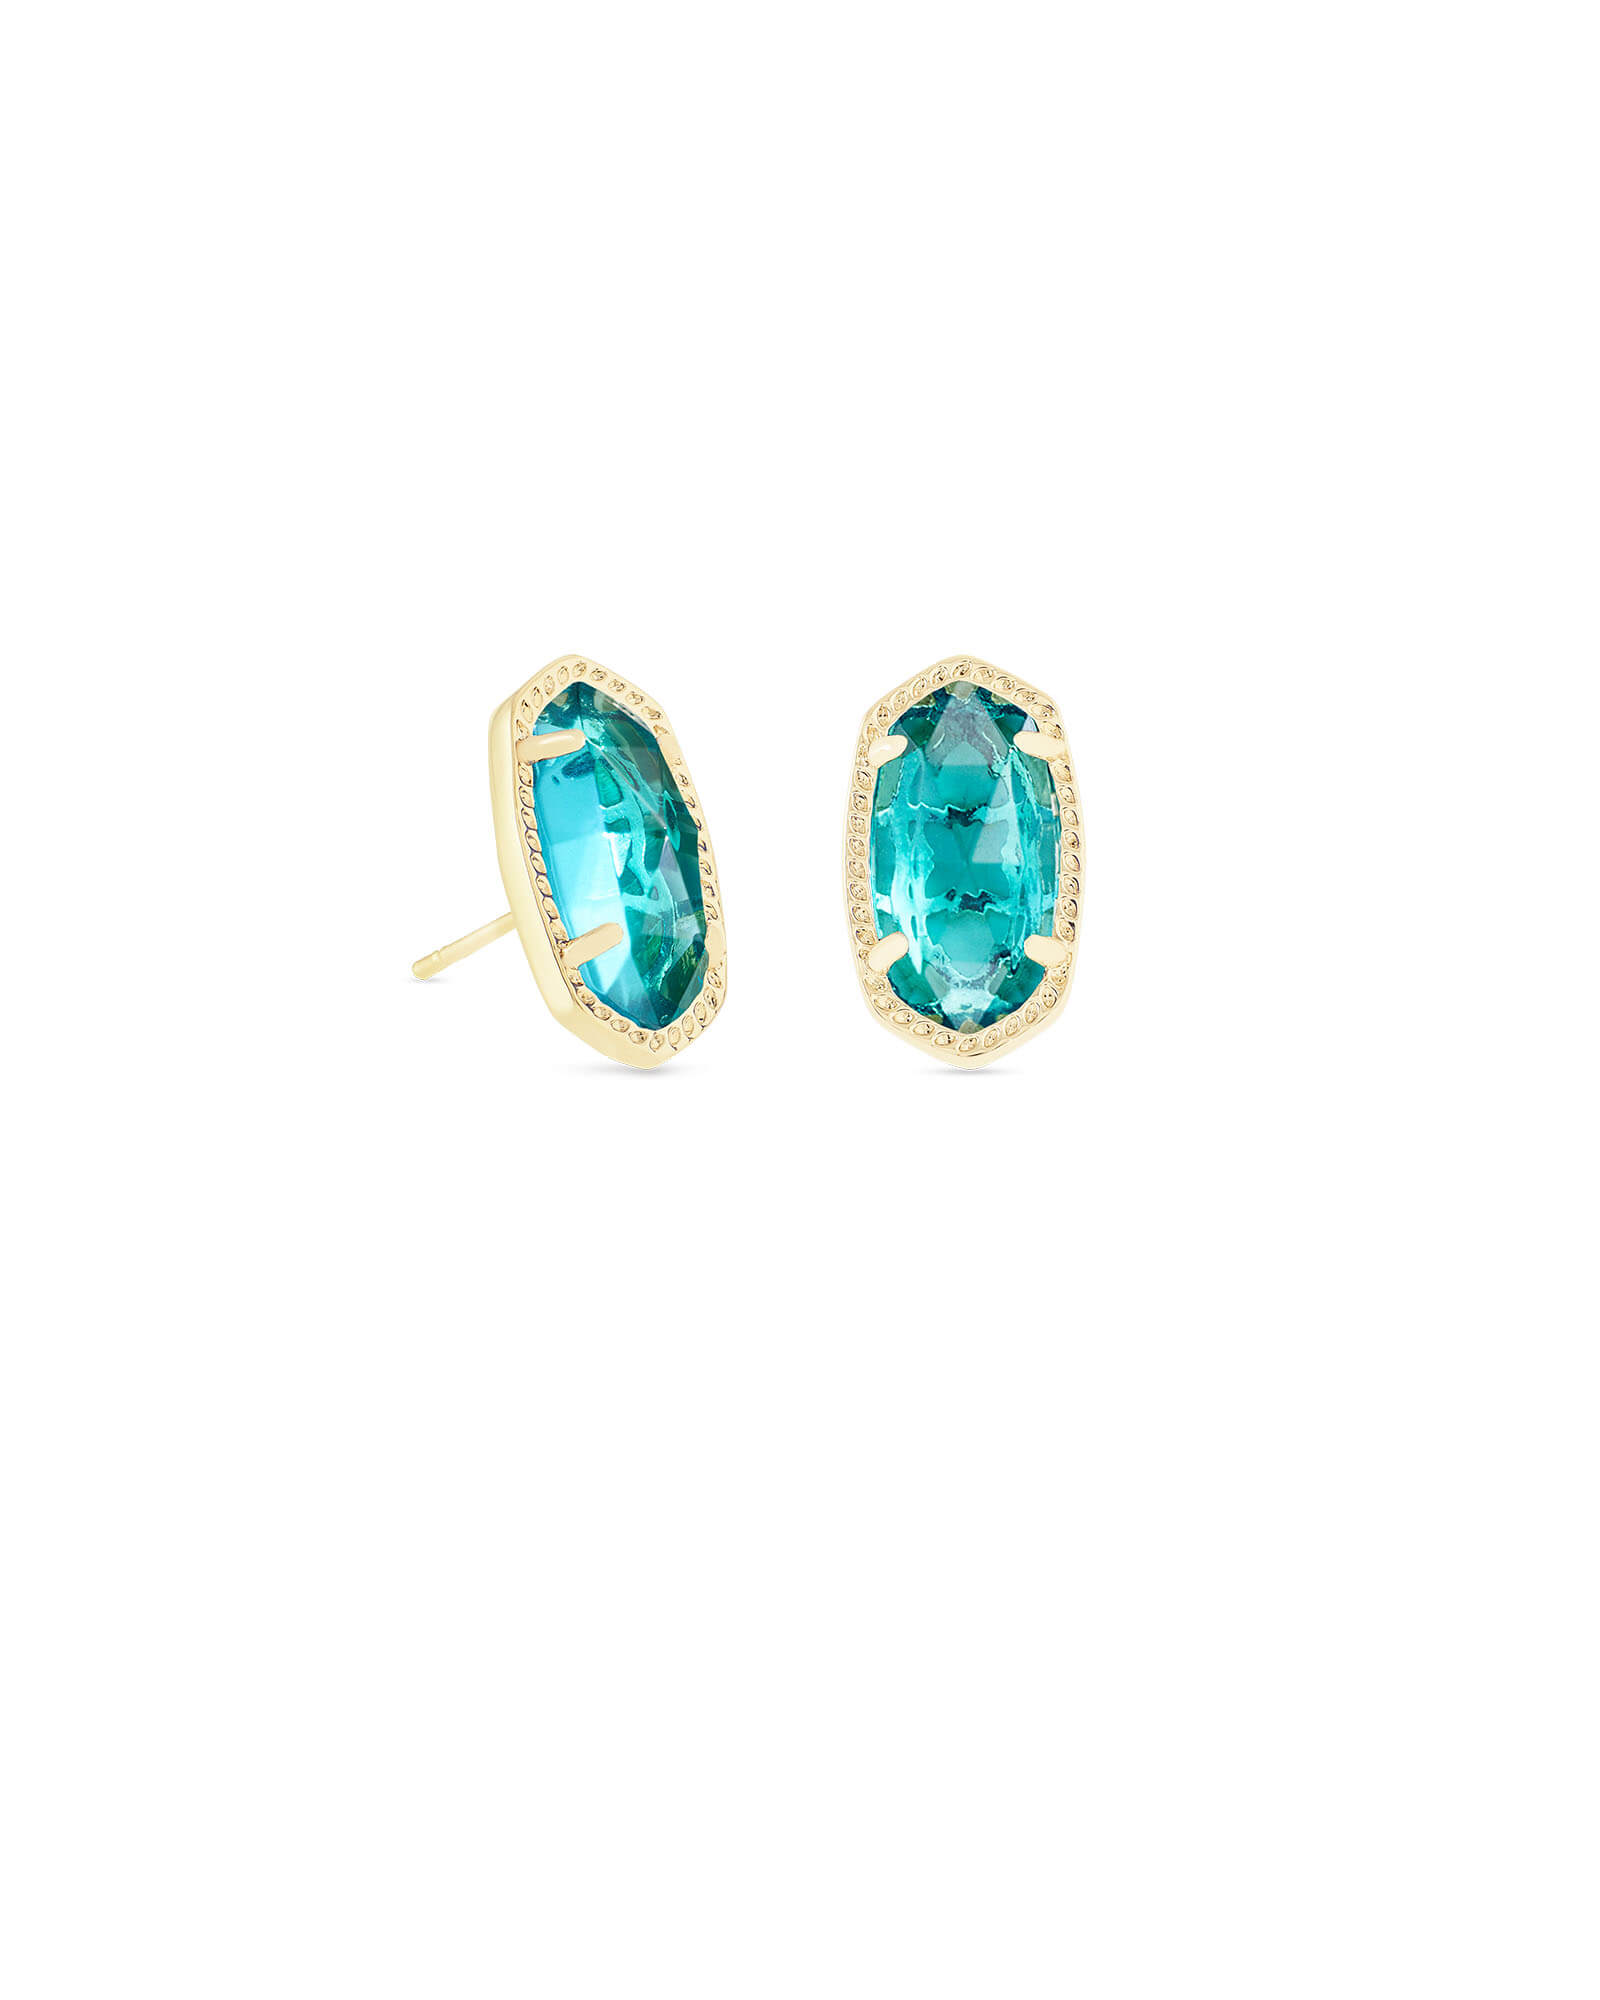 Ellie Gold Stud Earrings in London Blue